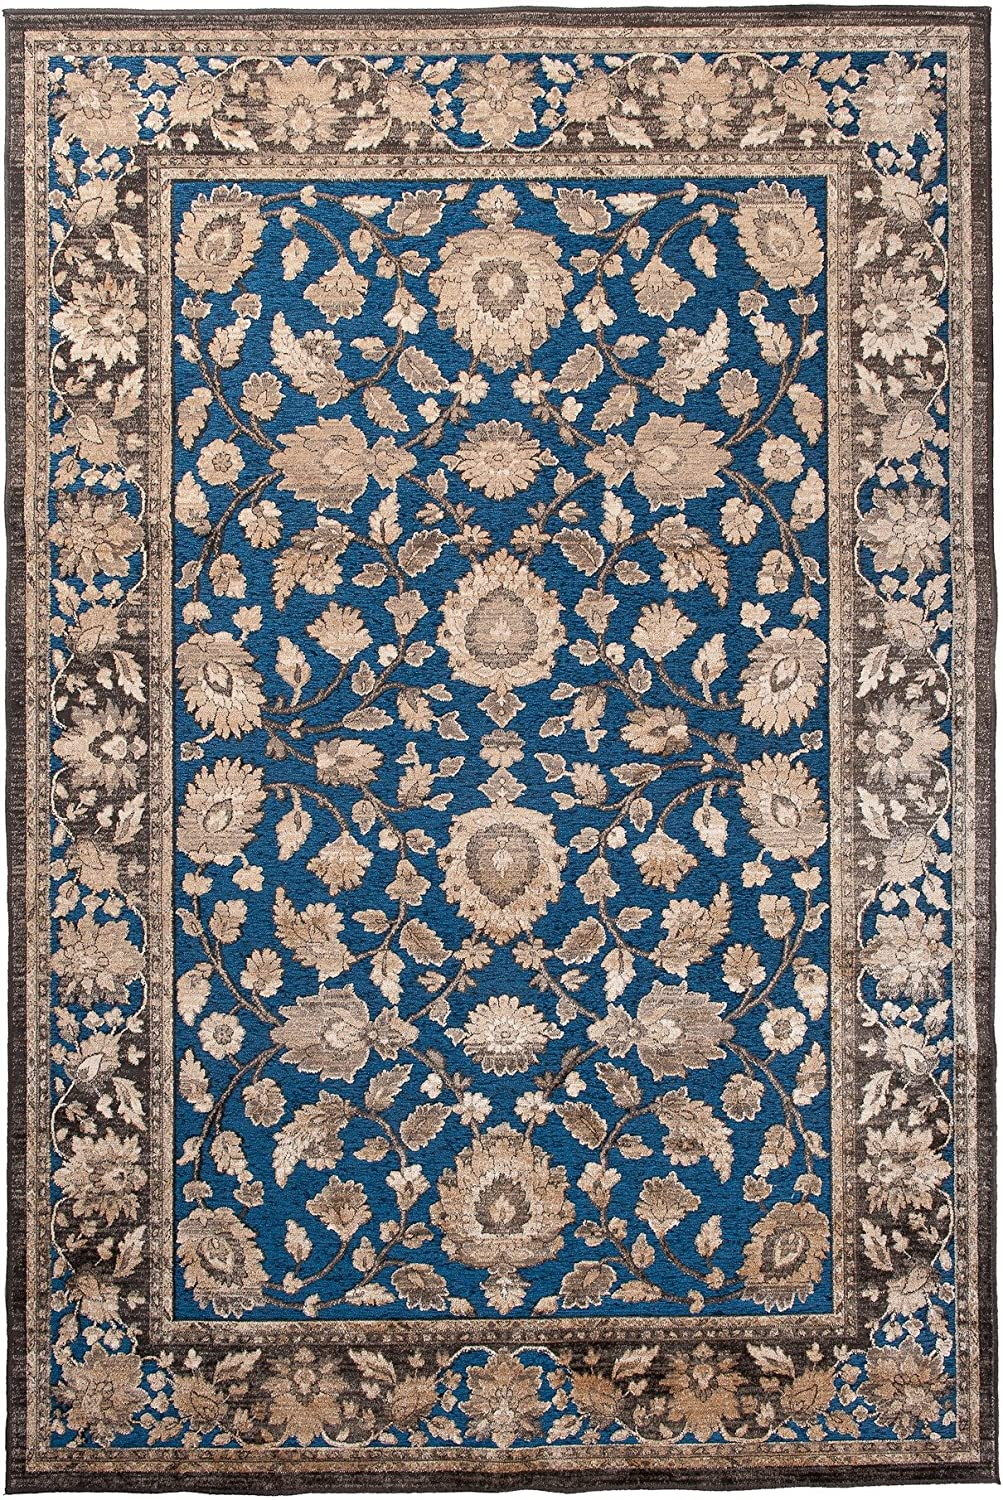 Carpeto Area Rug Oriental Traditional Turquoise Carpet 2'6'' x 4'9'' ft - 80 x 150 cm Hortense Collection